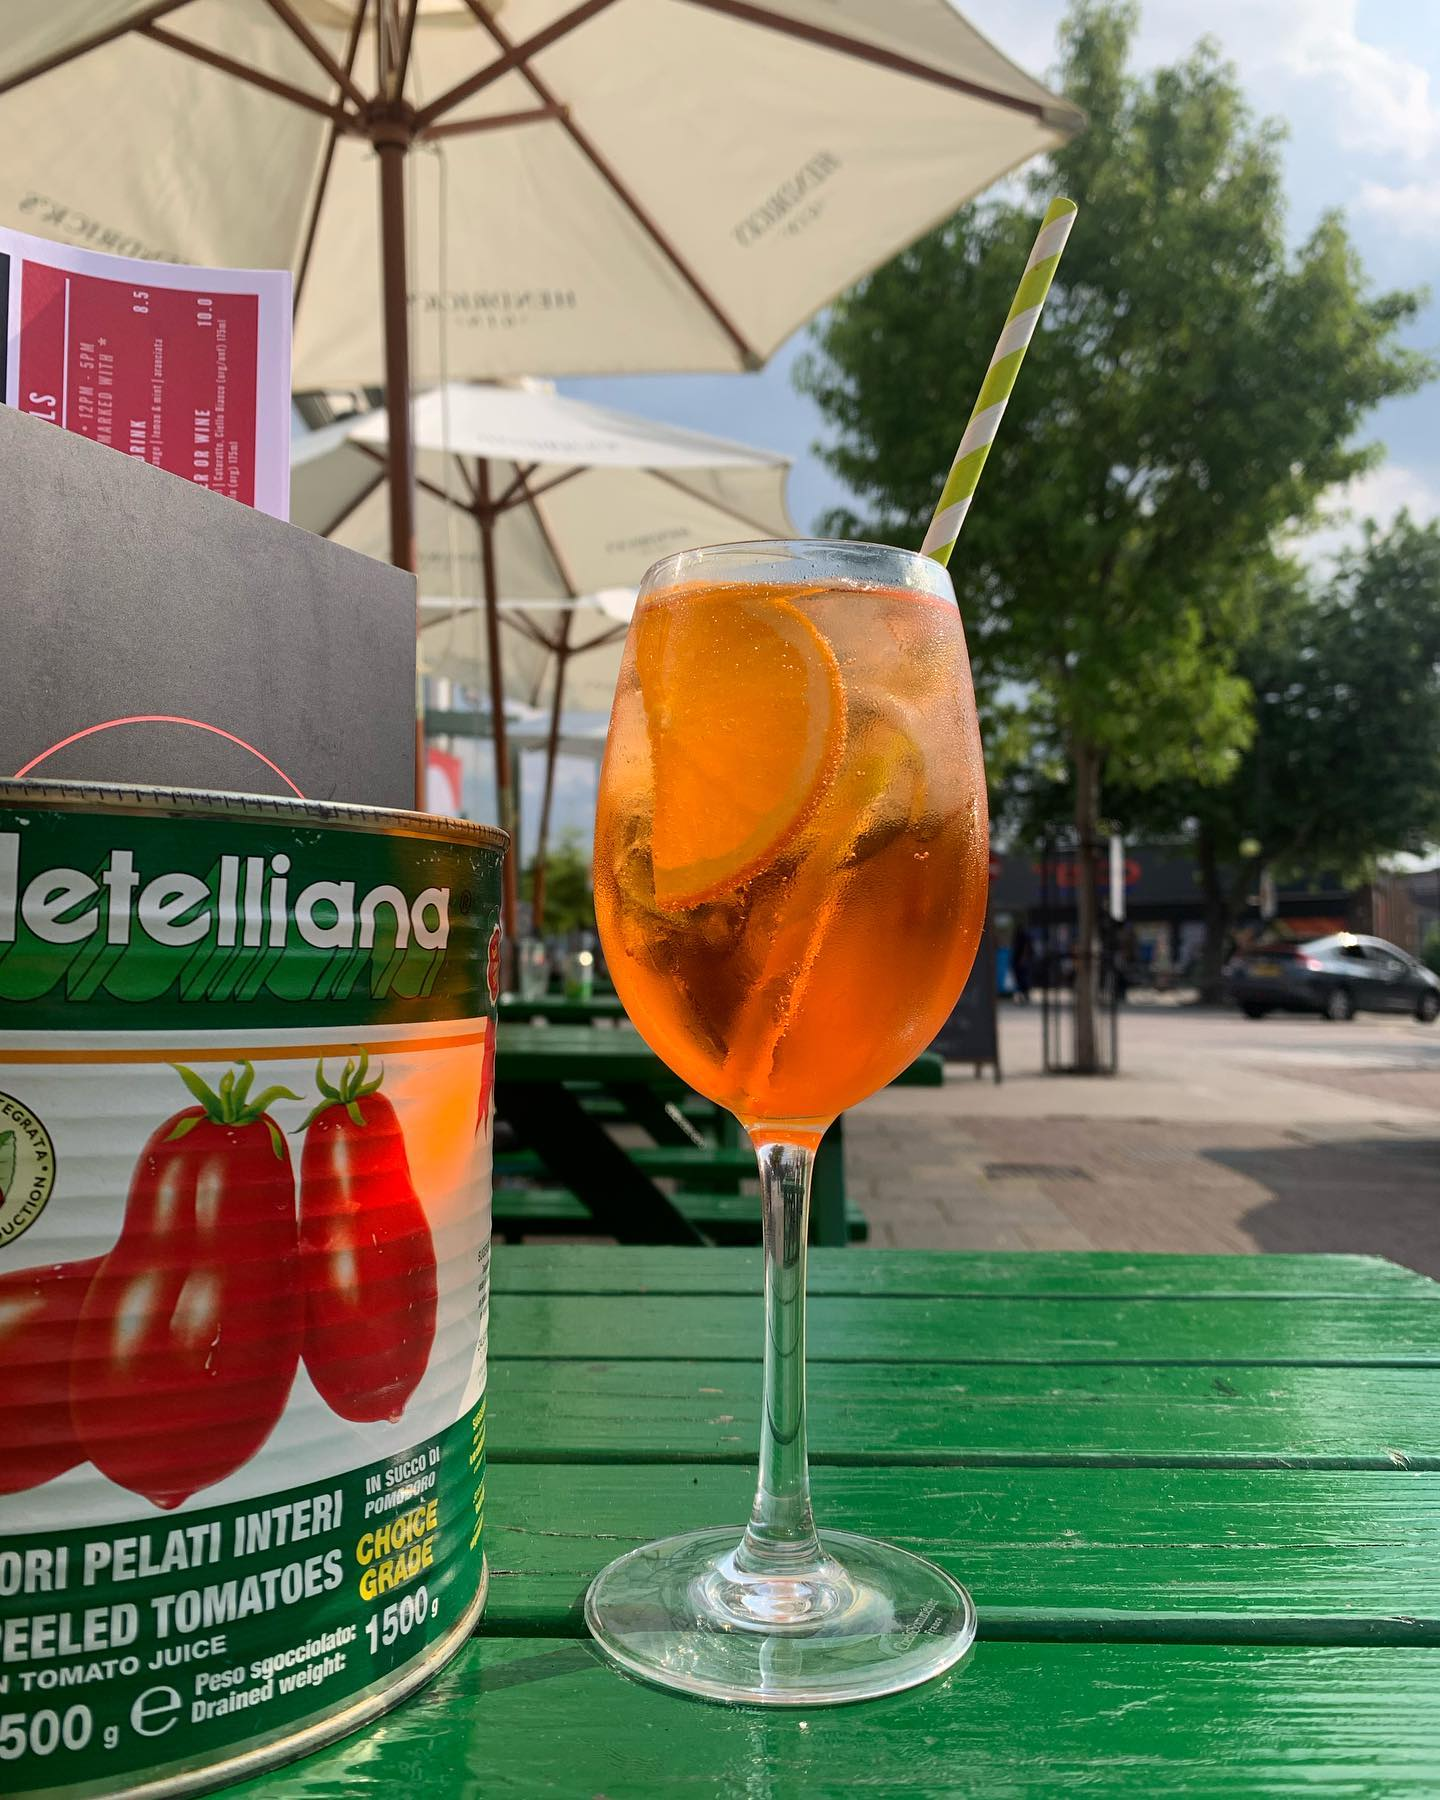 We just can't get enough of those beautiful summer days 🌞 🍹   Enjoy a Spritz (or two) with us today! Open till 22 😎  • • • • • • #youwantapizzame #summerishere #summer #summervibes #pizzalover #wellstreet #pizzagram #cocktail #hackney #londonfood #londonlife #friends #lunchdate #goodfood #foodporn #hotsummer #comeandgetit #cocktails #spritz #aperolspritz #aperitivo #alfresco #summervibes